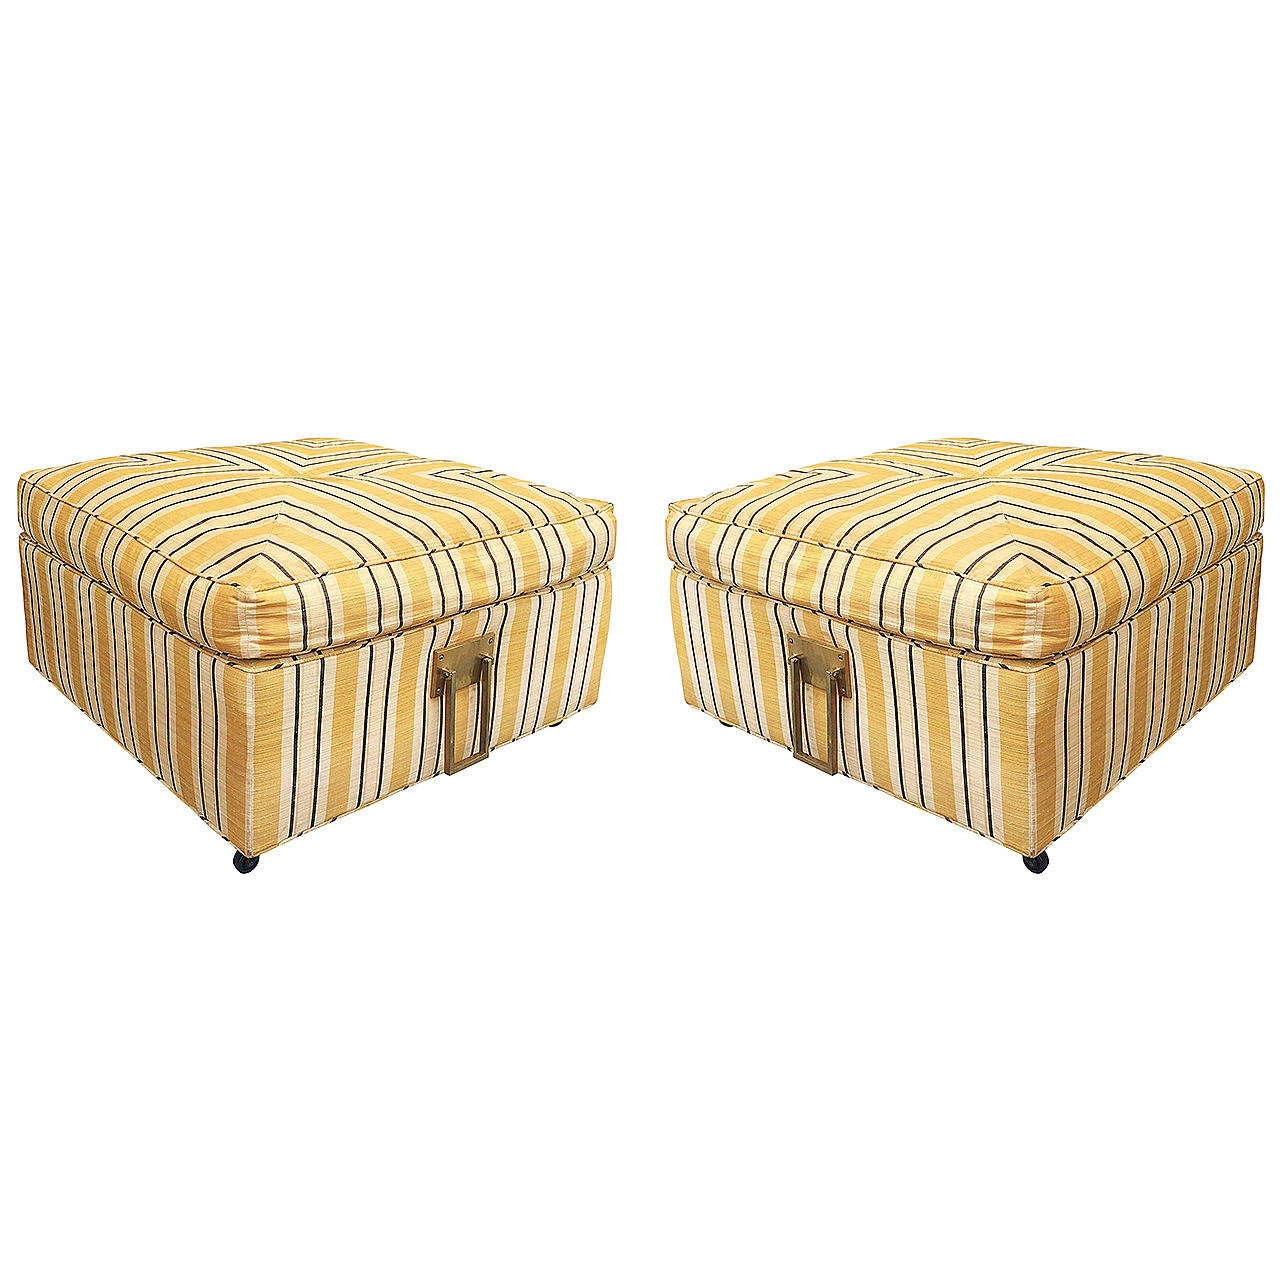 Pair of 1960s Square Ottomans in Casters and Solid Brass Handles